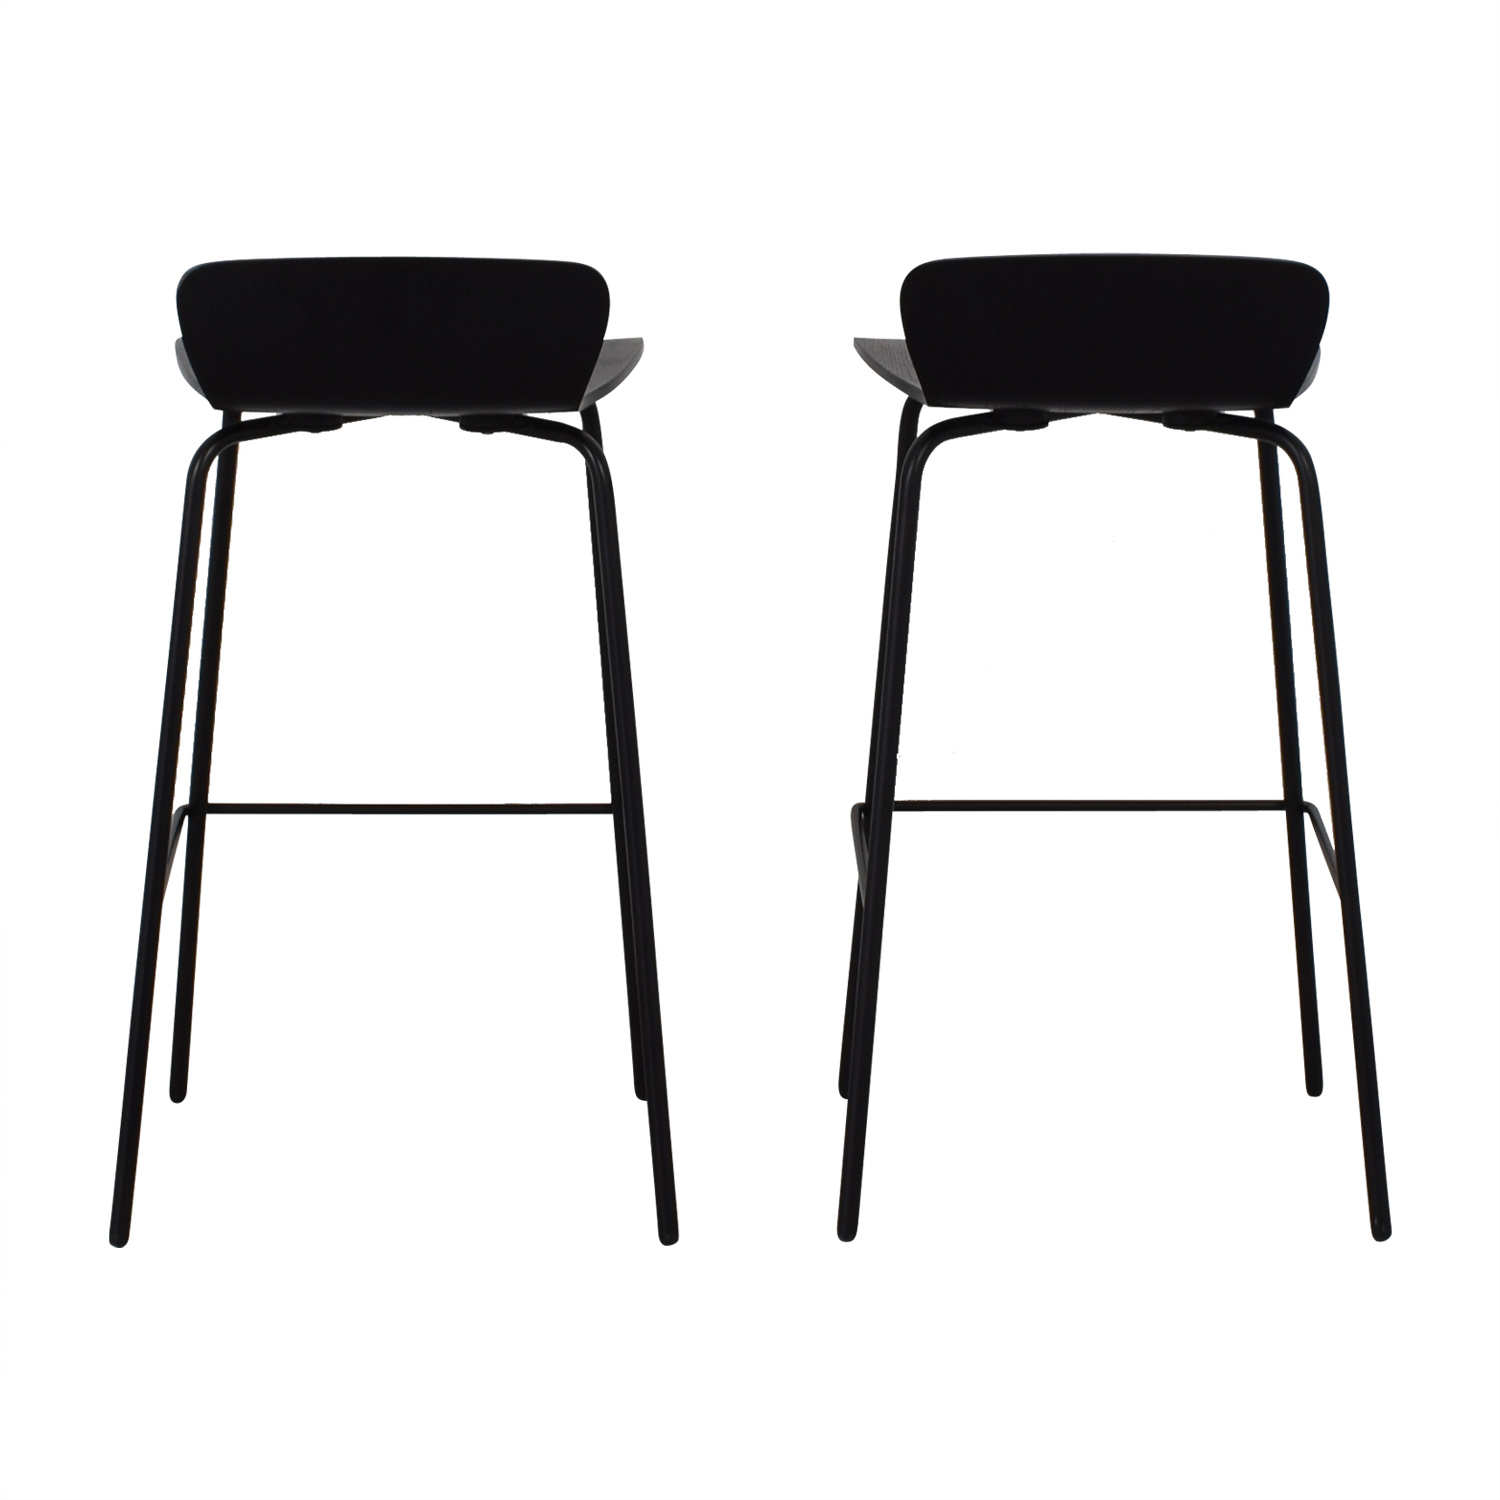 shop Crate & Barrel Felix Black Counter Stools Crate & Barrel Chairs